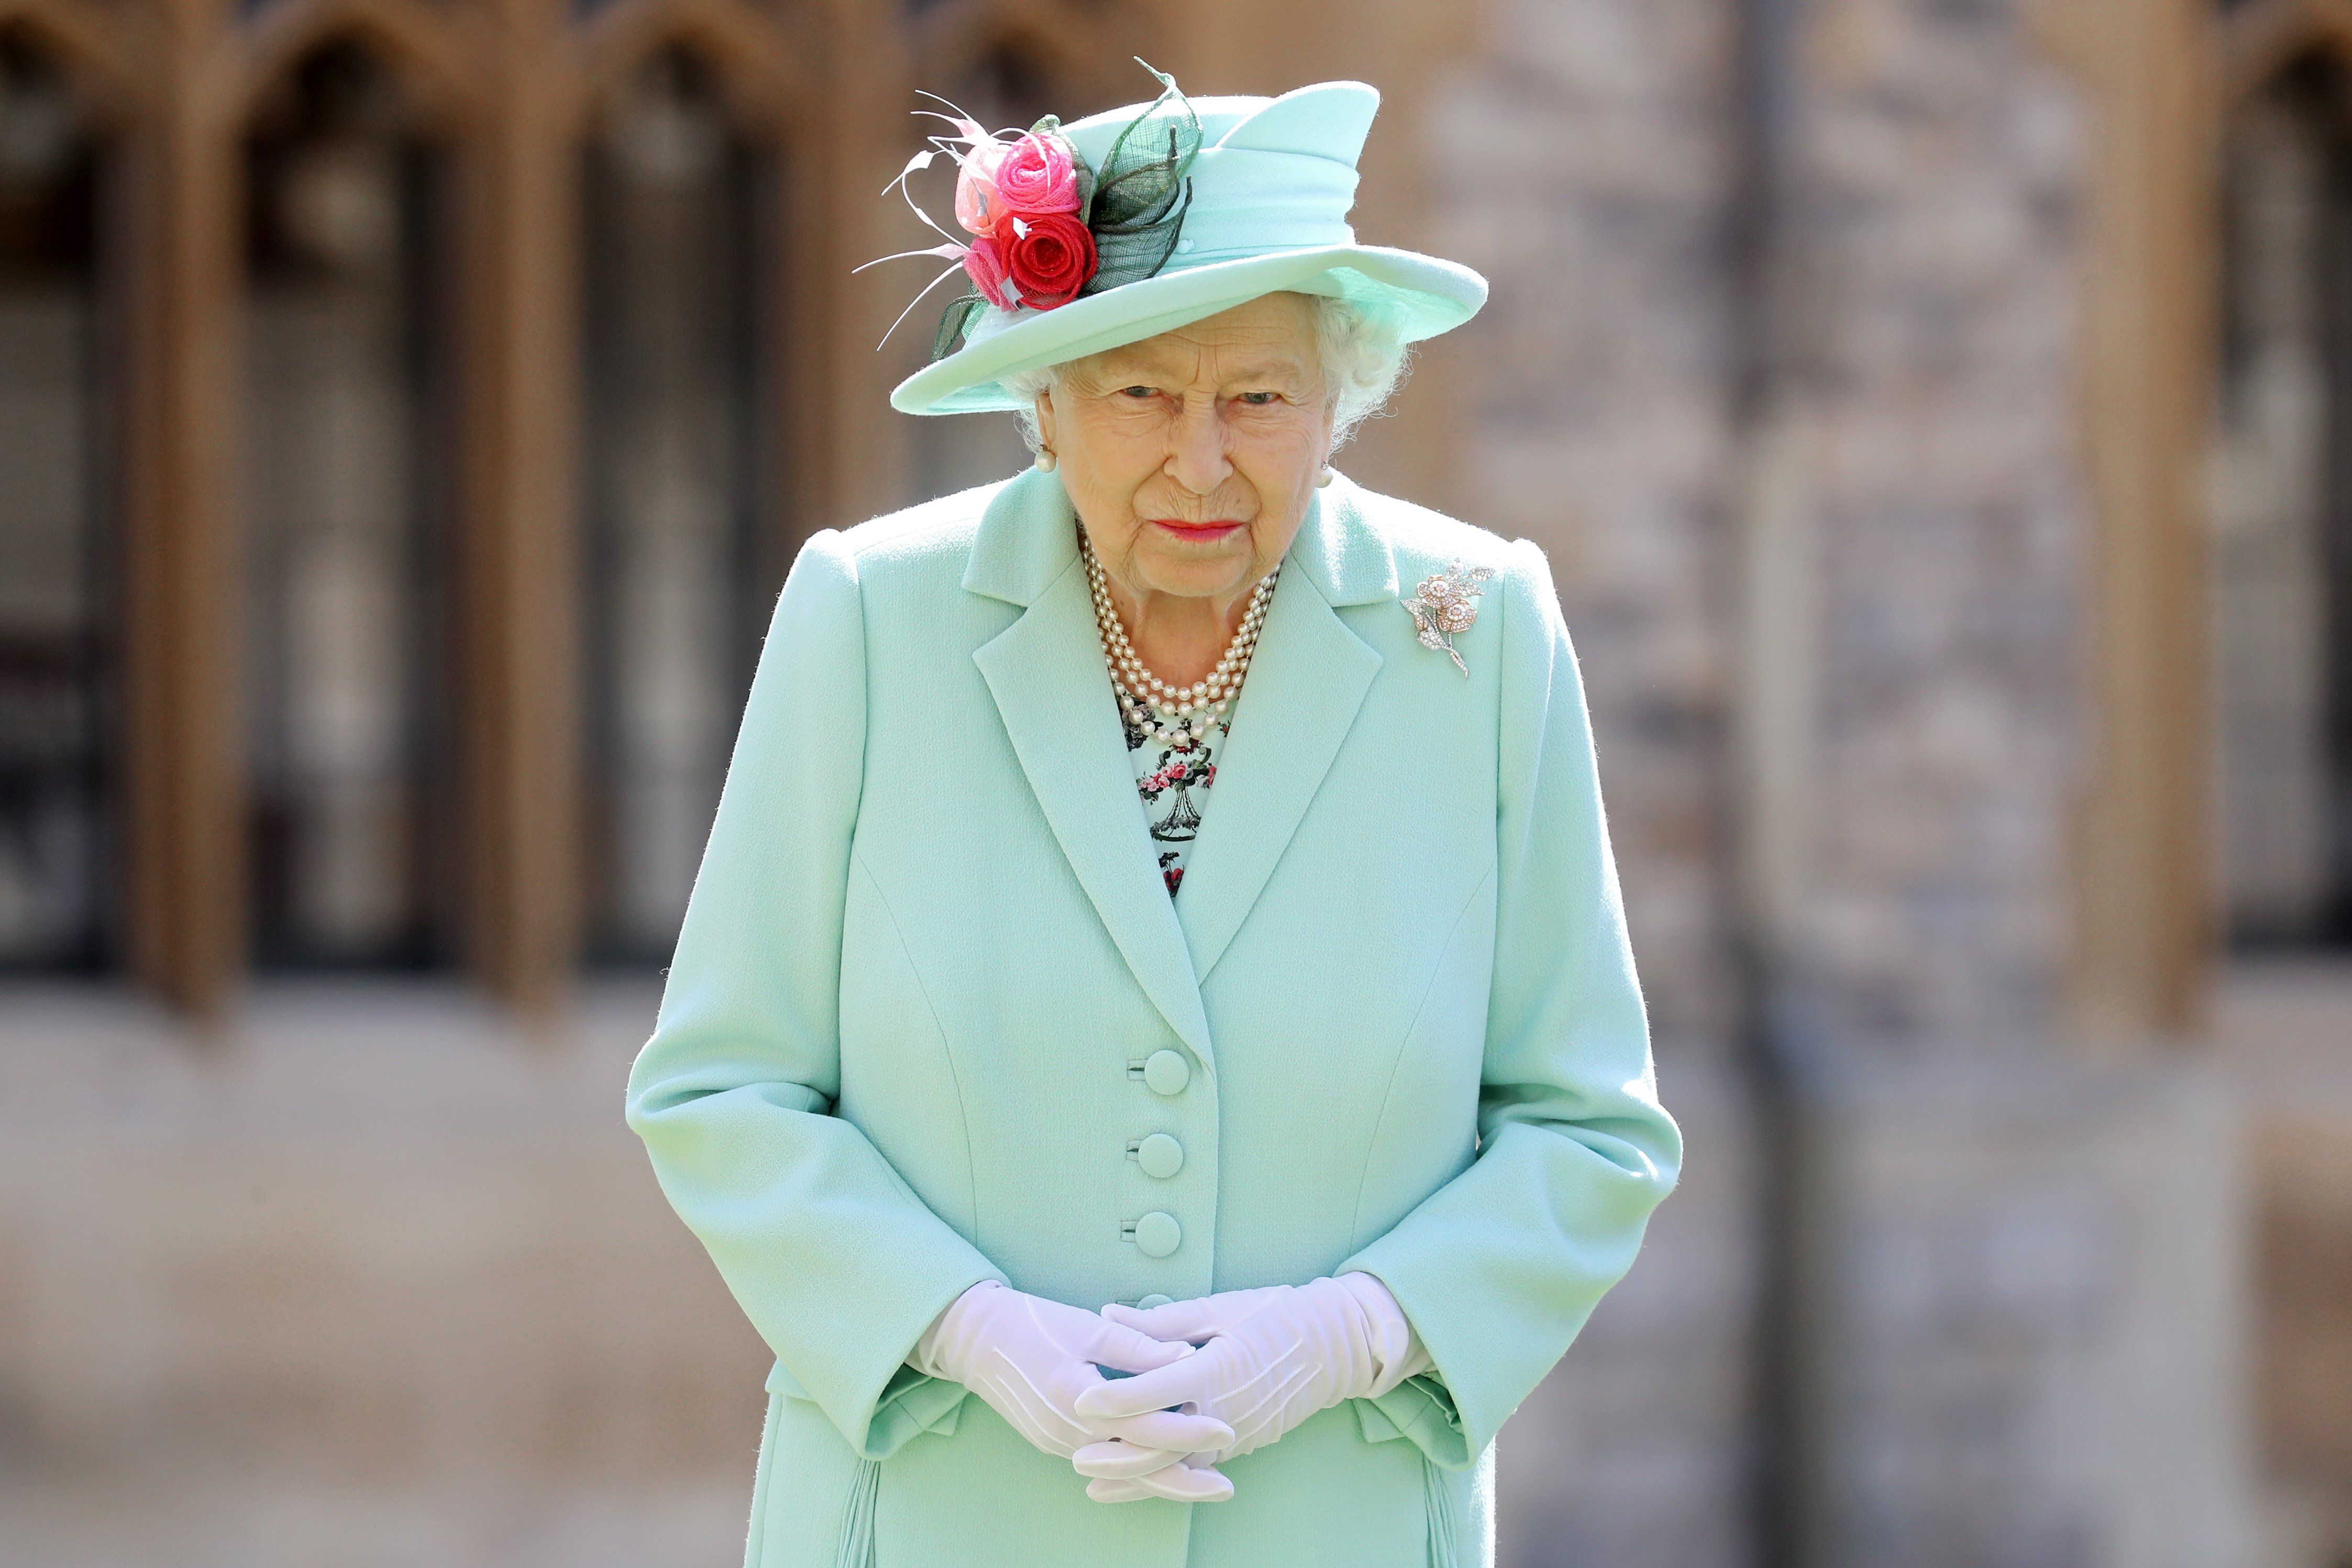 Queen Elizabeth II poses after awarding Captain Sir Thomas Moore with the insignia of Knight Bachelor at Windsor Castle on July 17, 2020 in Windsor, England | Photo: Getty Images